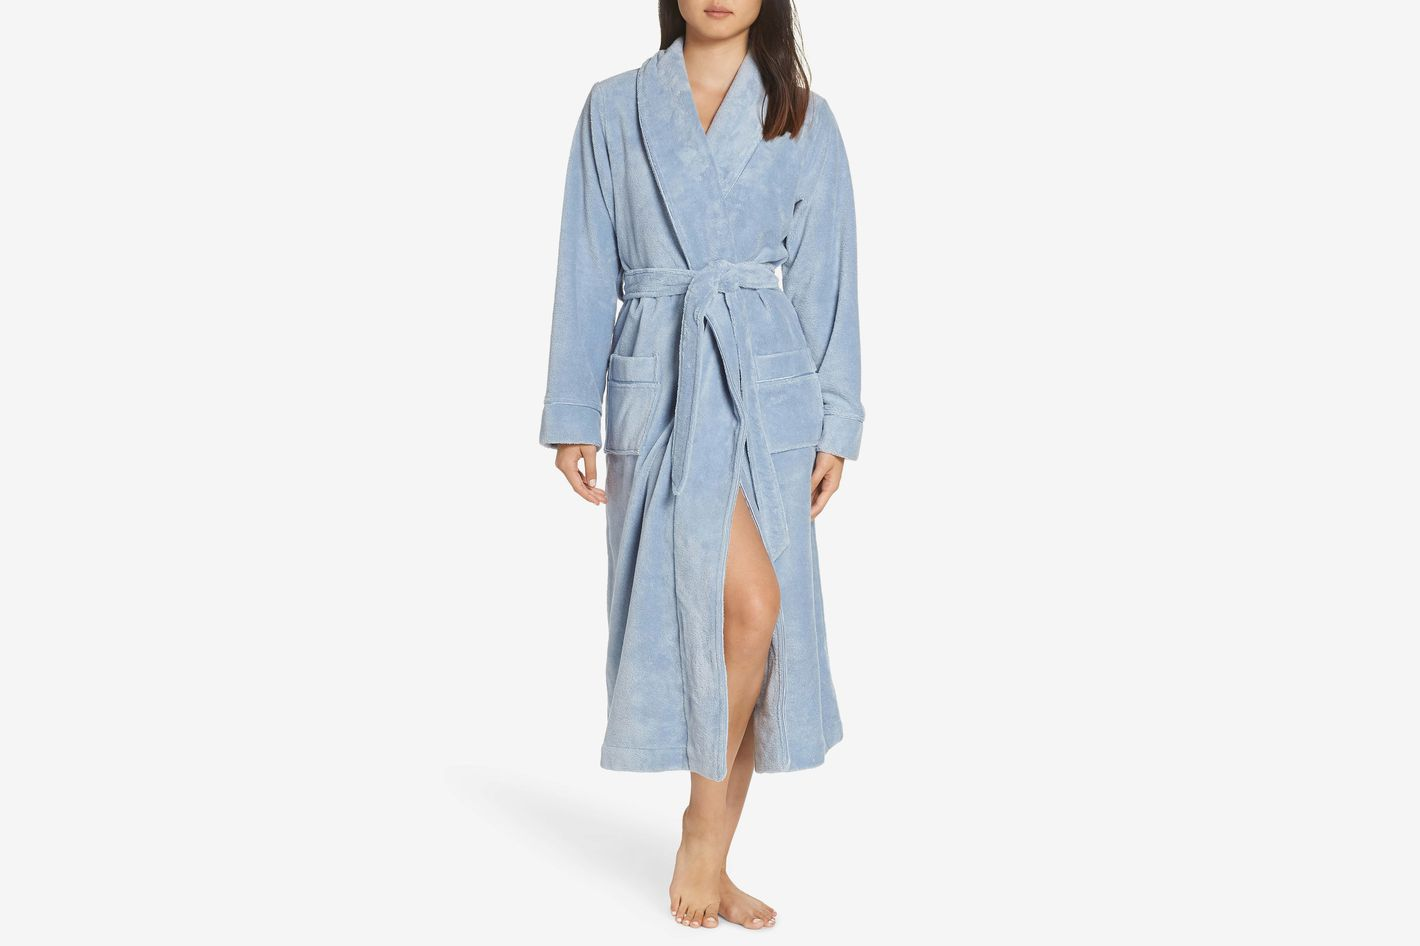 d9934da5b7 12 Best Bathrobes for Women 2018